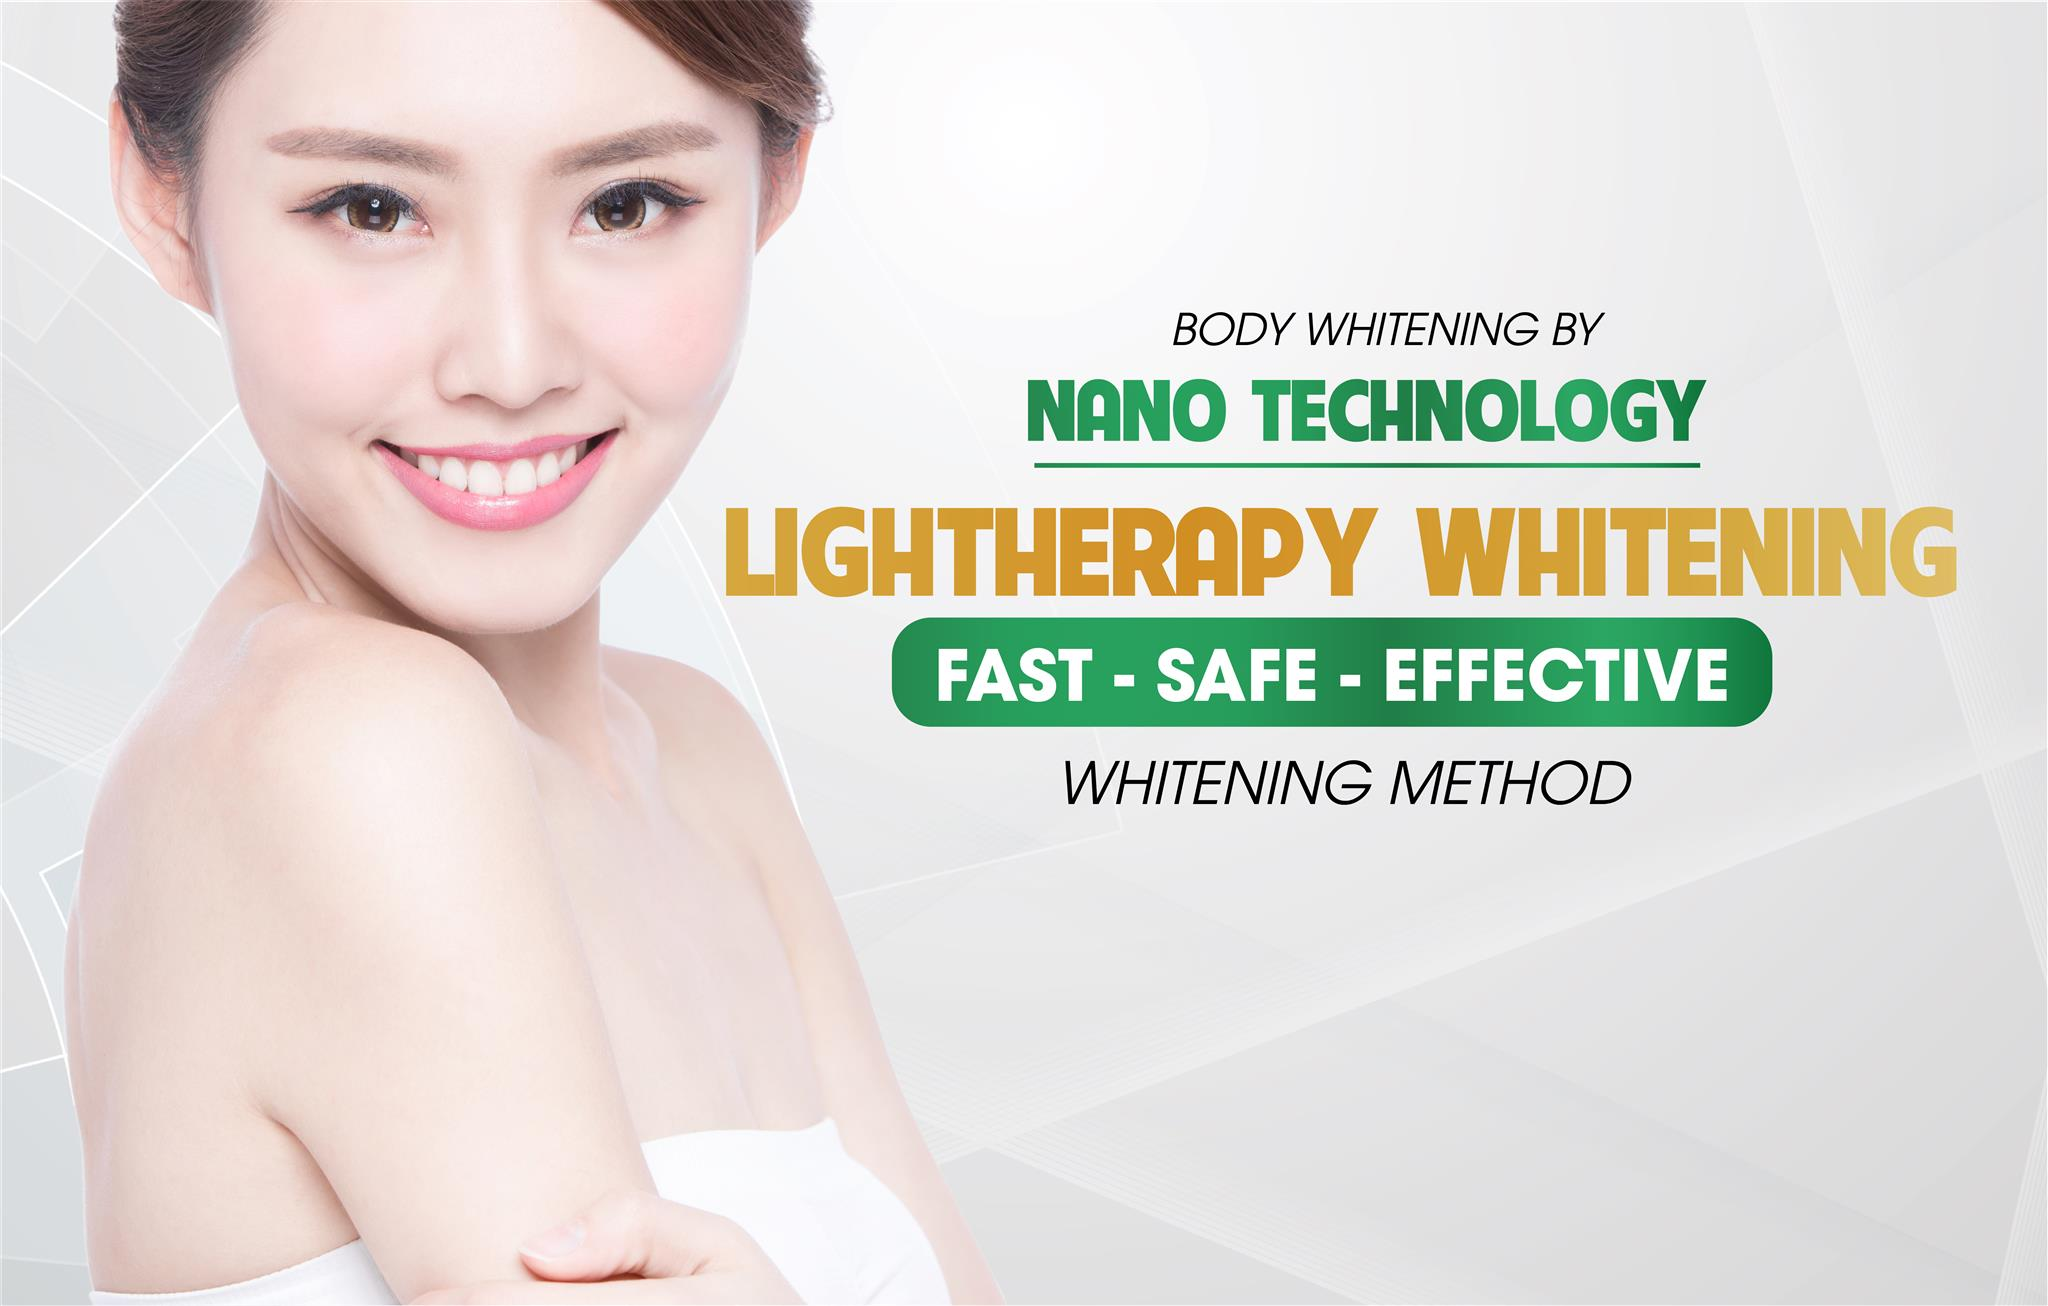 BODY WHITENING BY NANO TECHNOLOGY